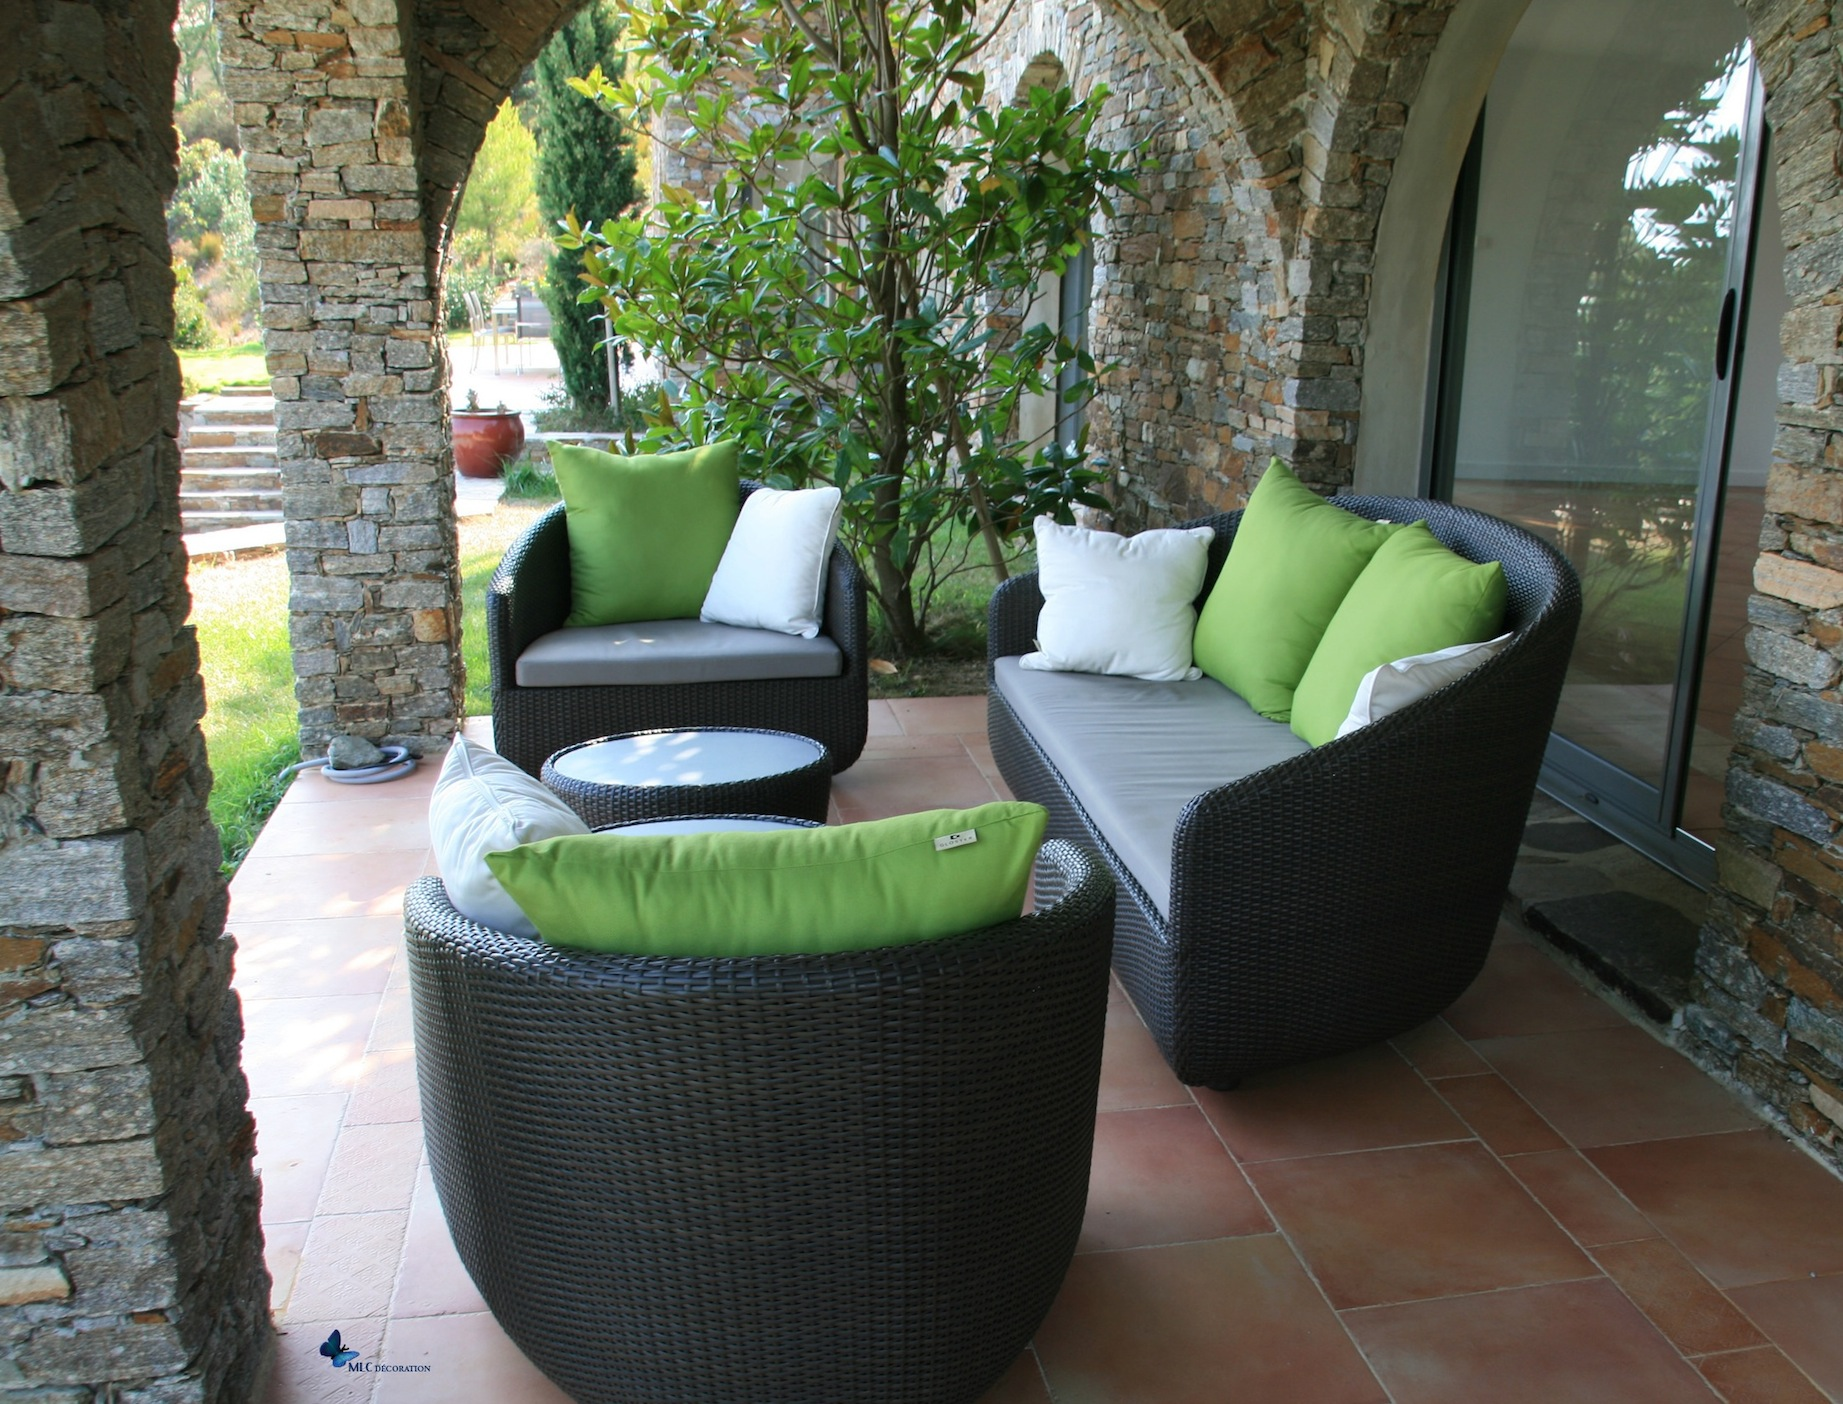 Canap ext rieur design archives le blog d co de mlc for Jardin design exterieur